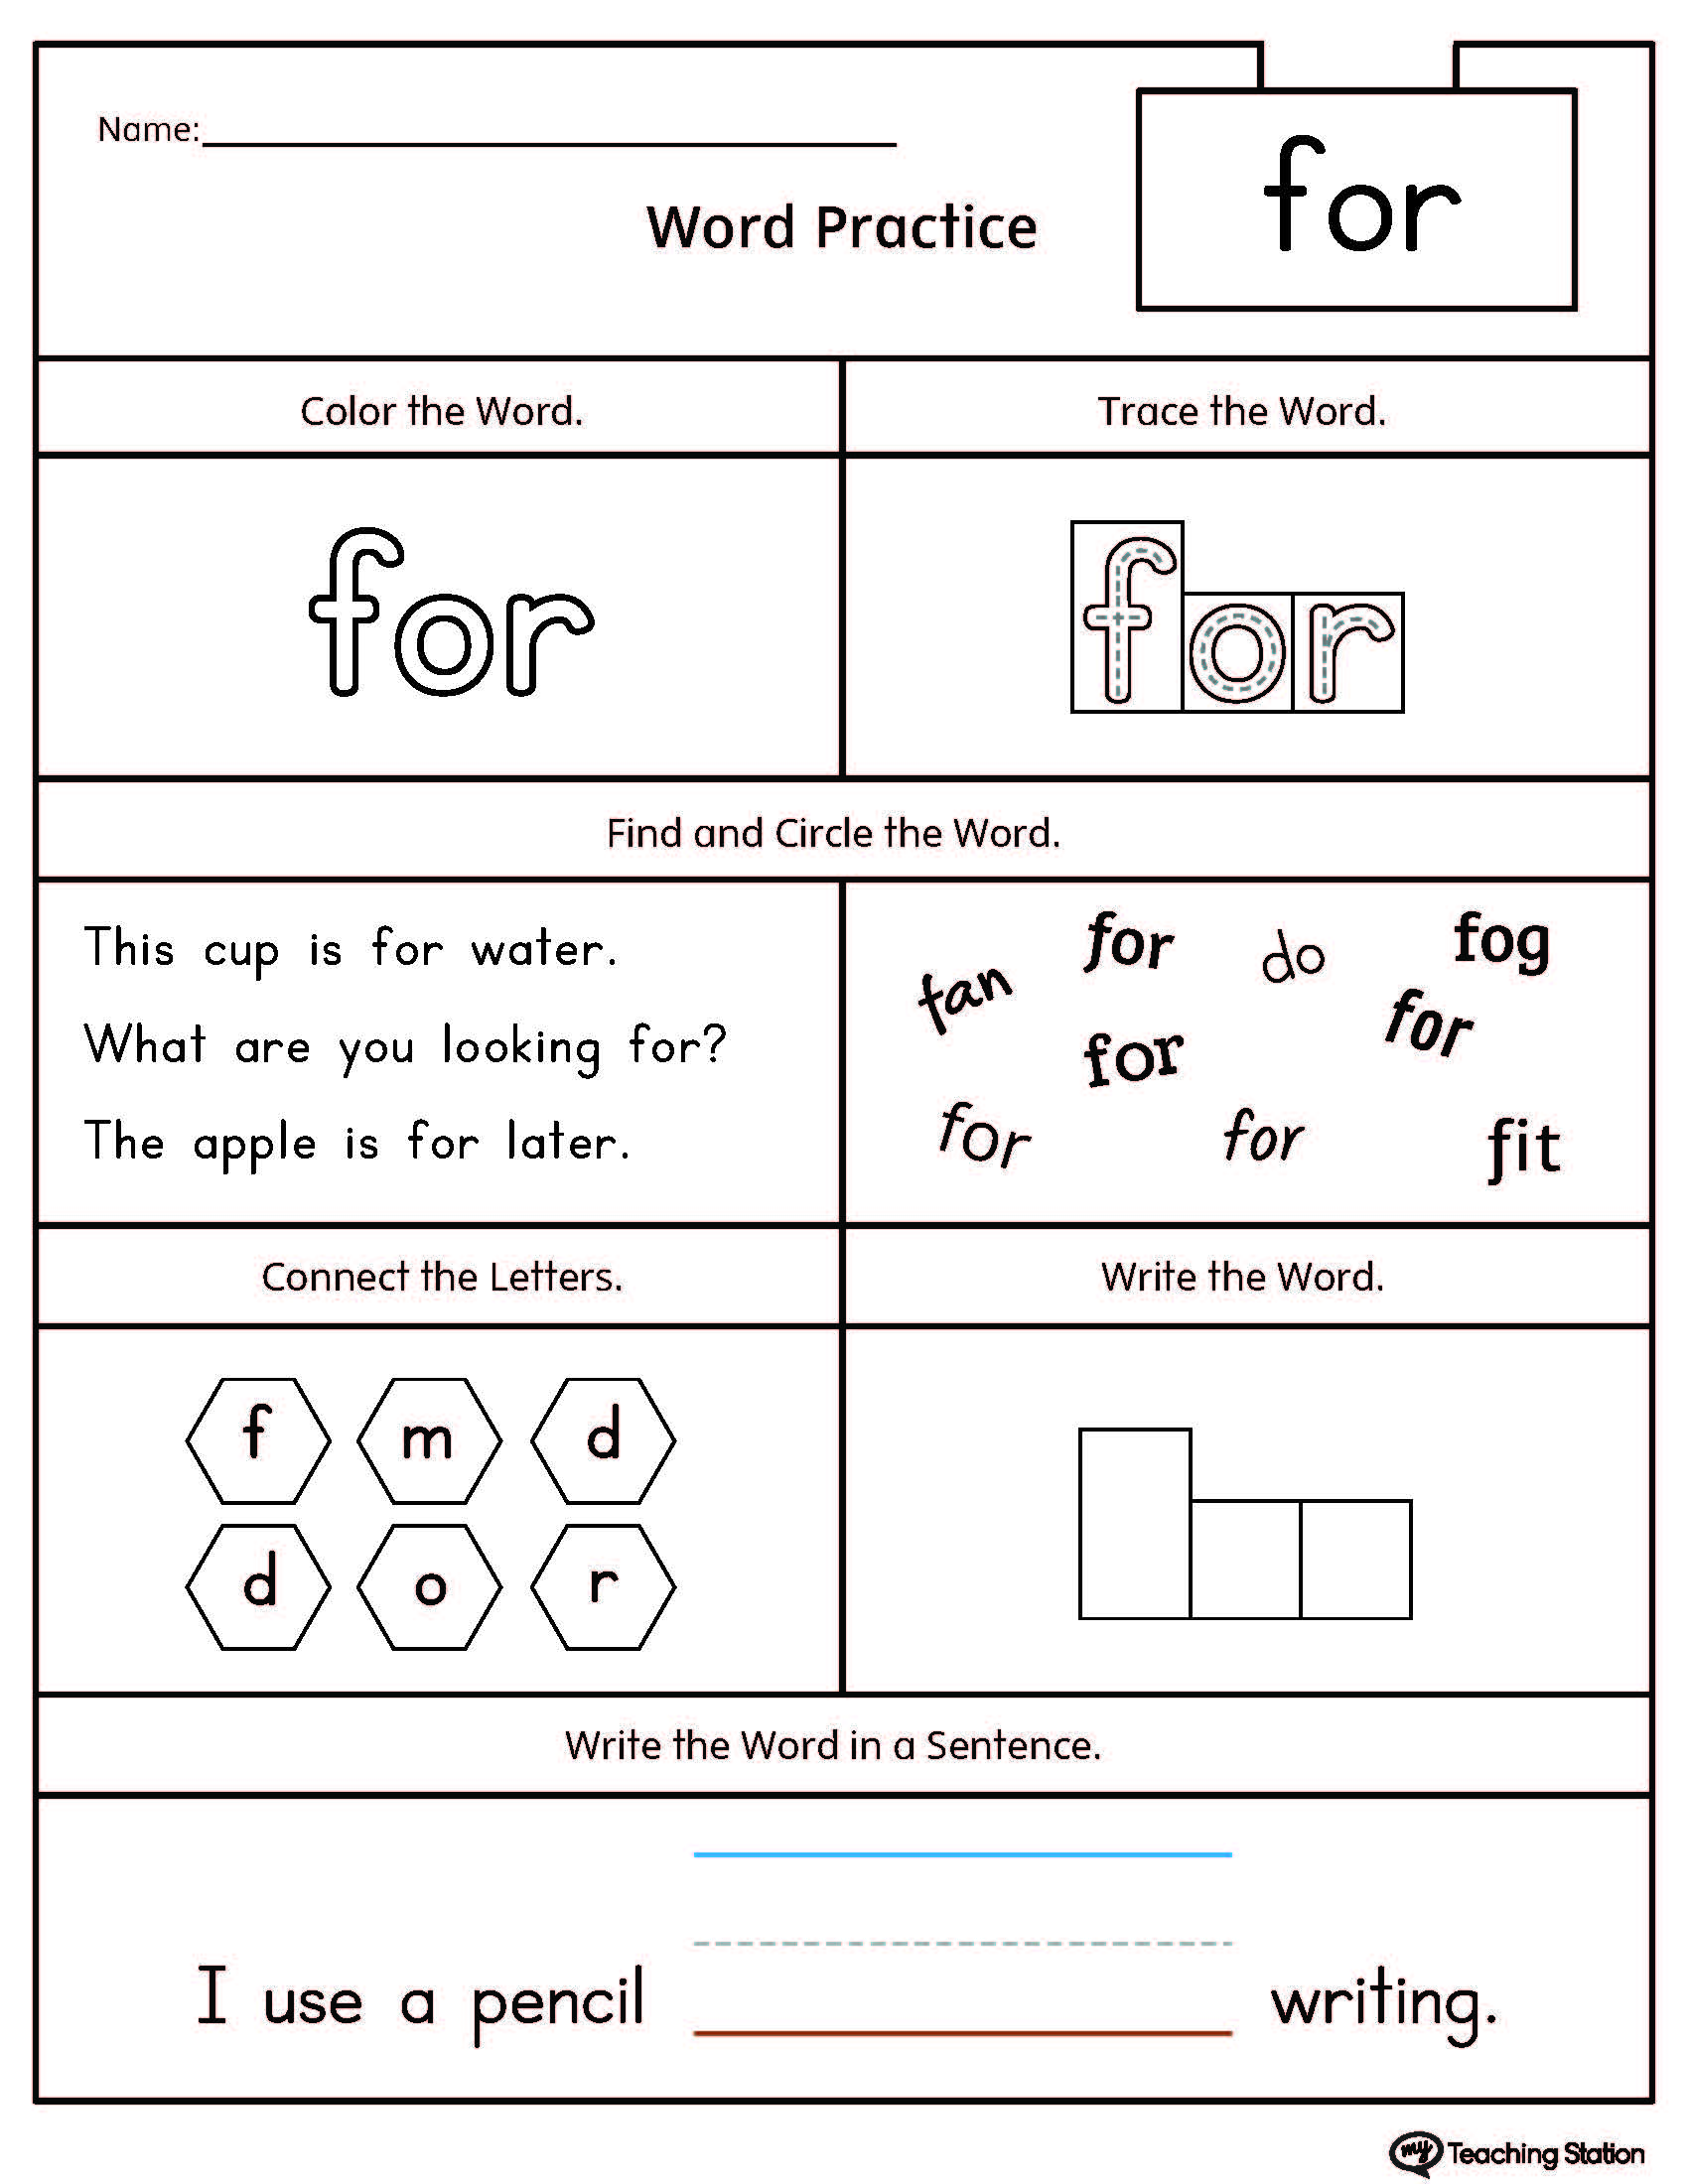 Kindergarten High Frequency Words Printable Worksheets – High Frequency Words Kindergarten Worksheets